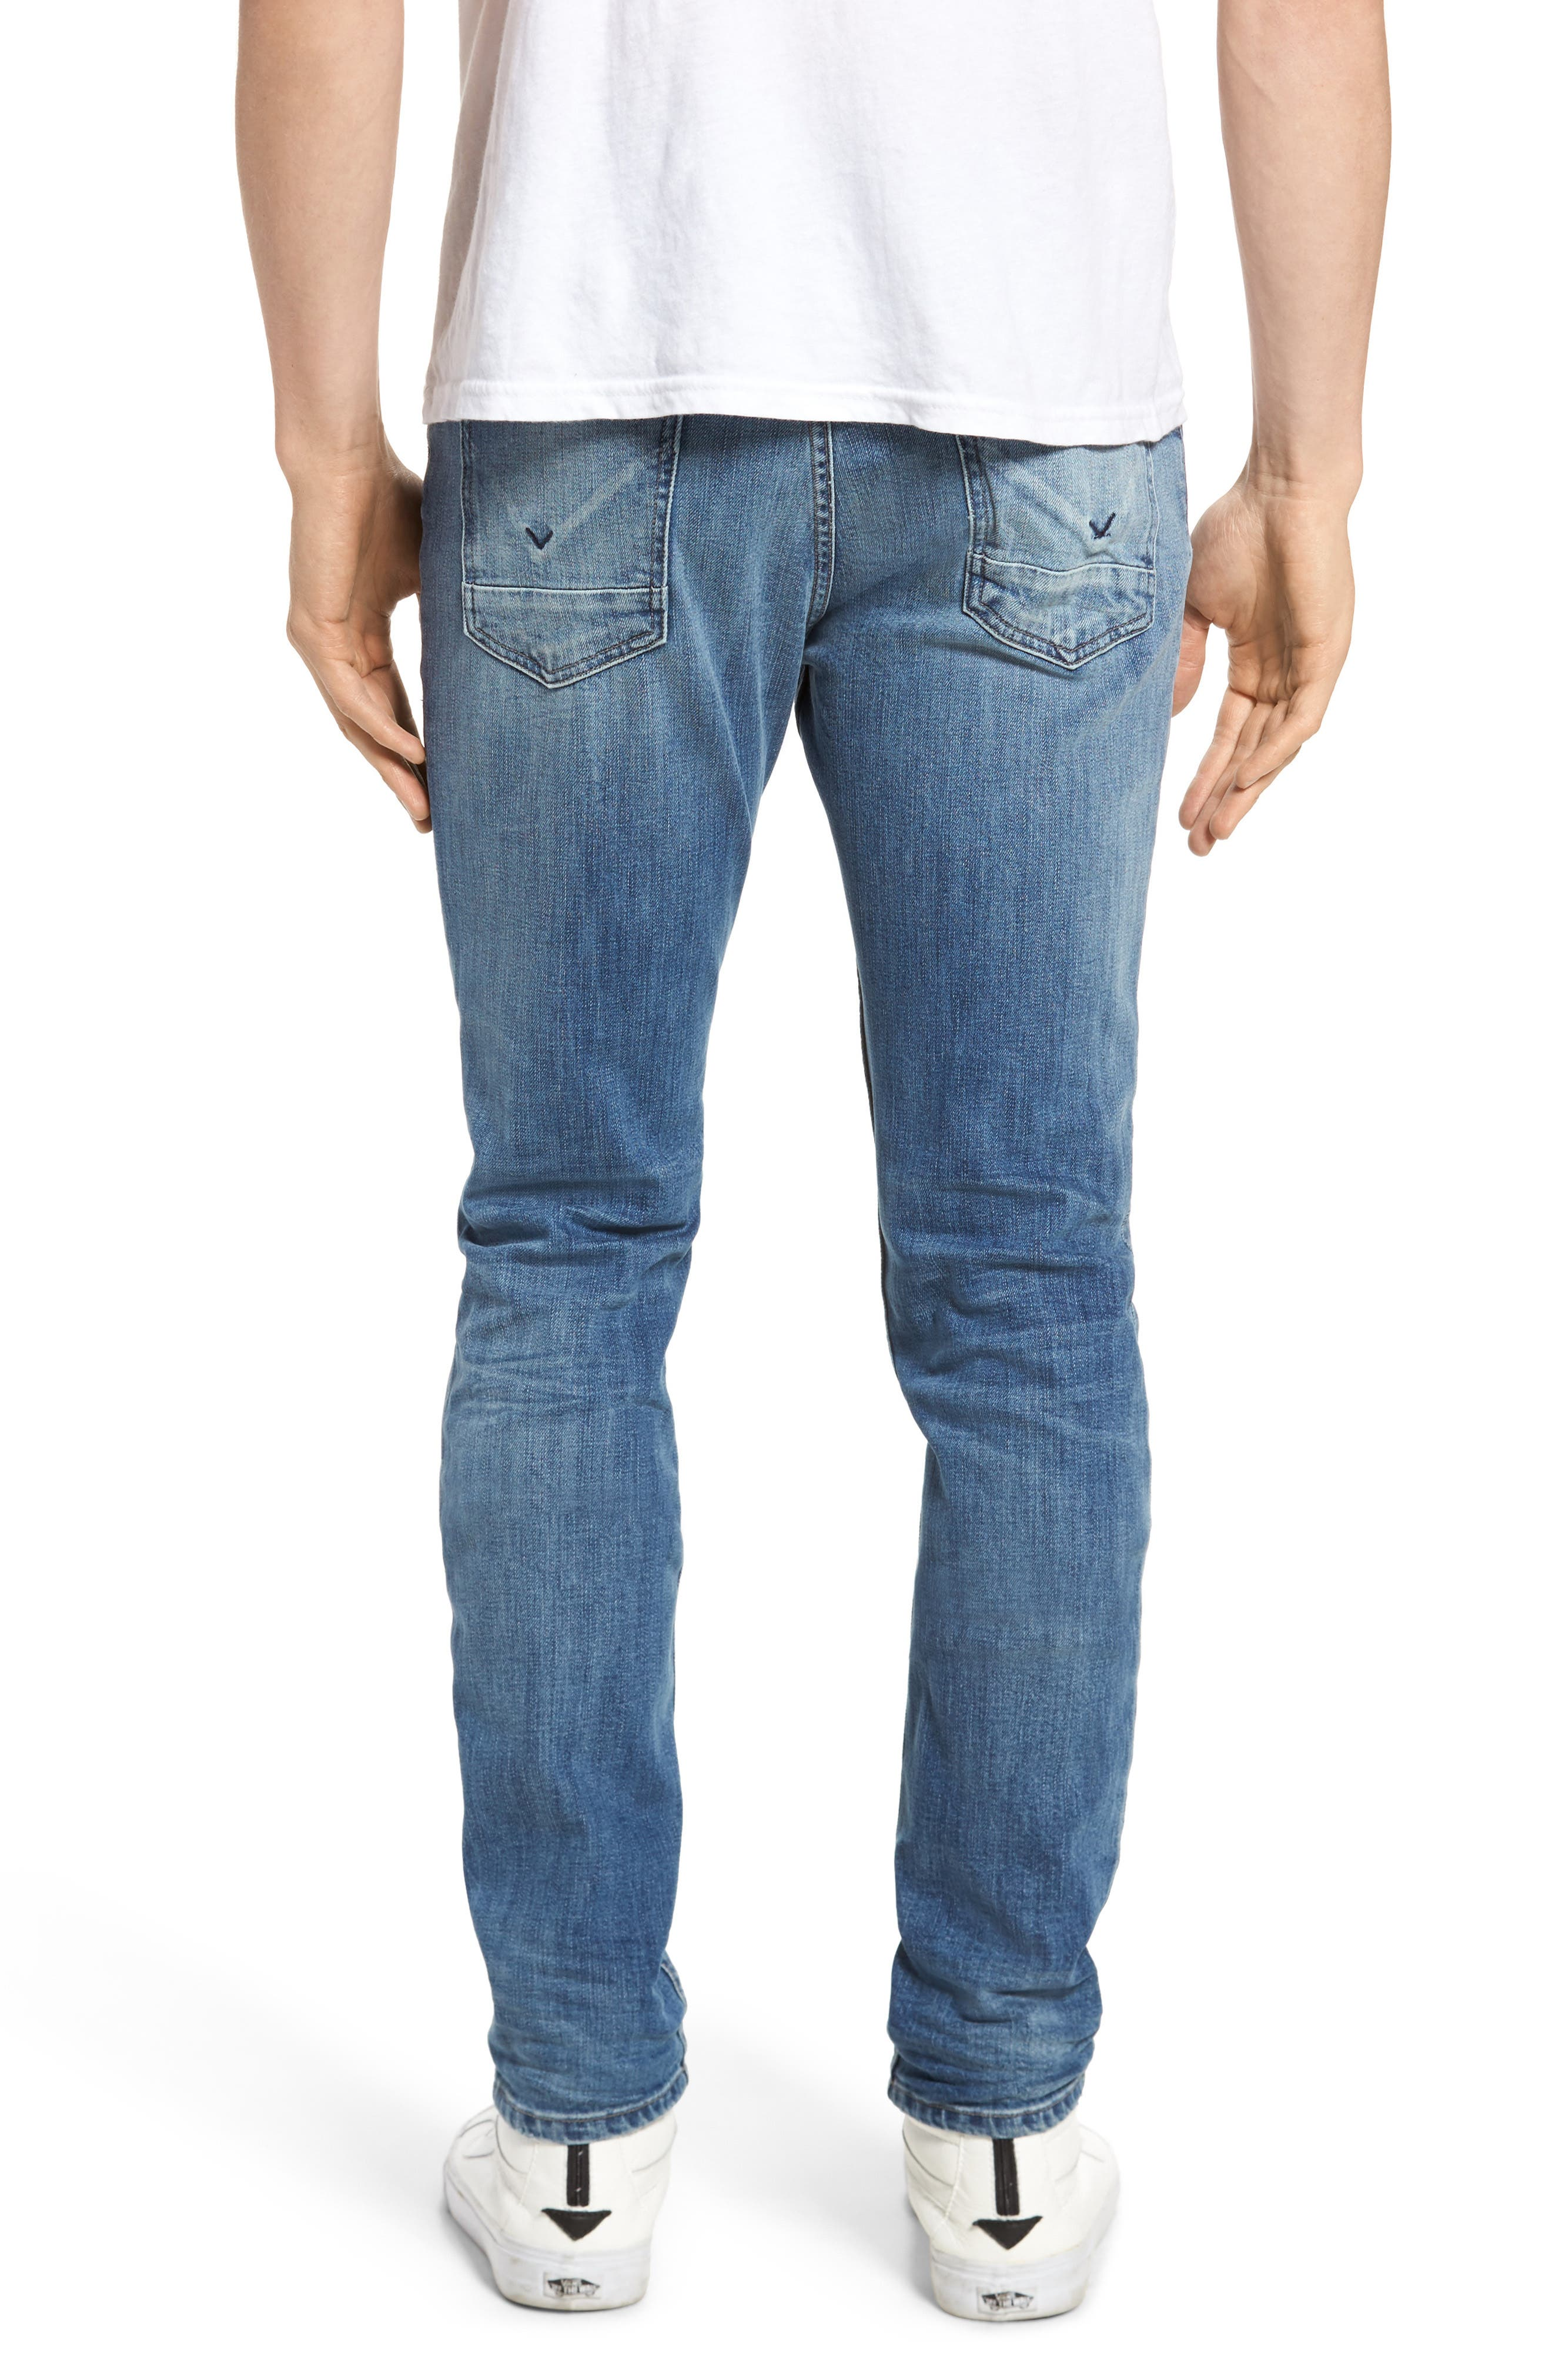 Axl Skinny Fit Jeans,                             Alternate thumbnail 2, color,                             Racking